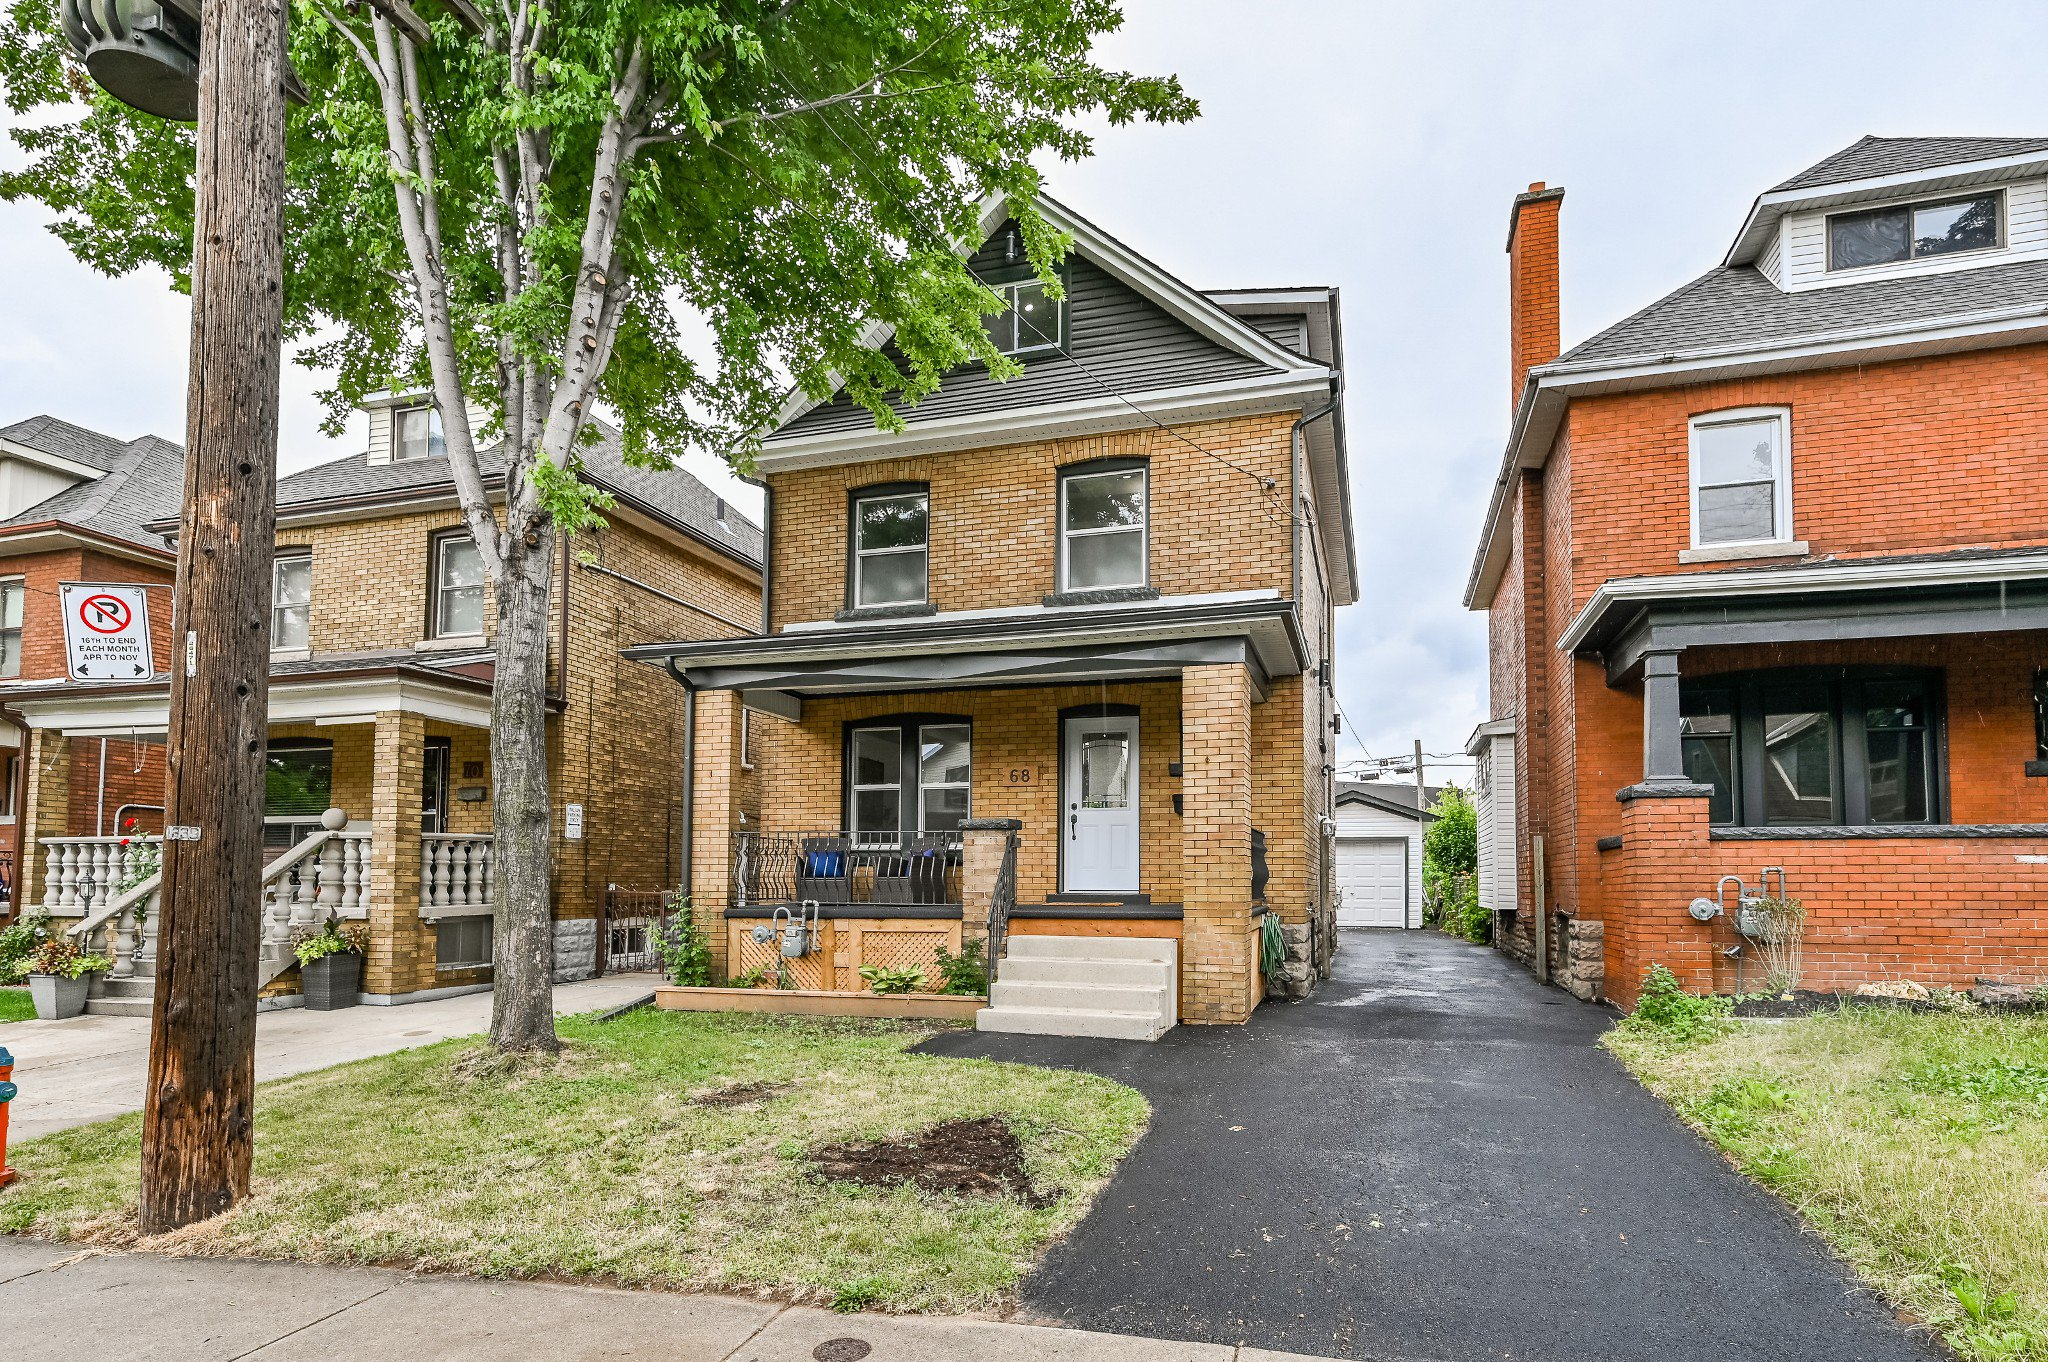 Main Photo: 68 Balmoral Avenue in Hamilton: House for sale : MLS®# H4082614